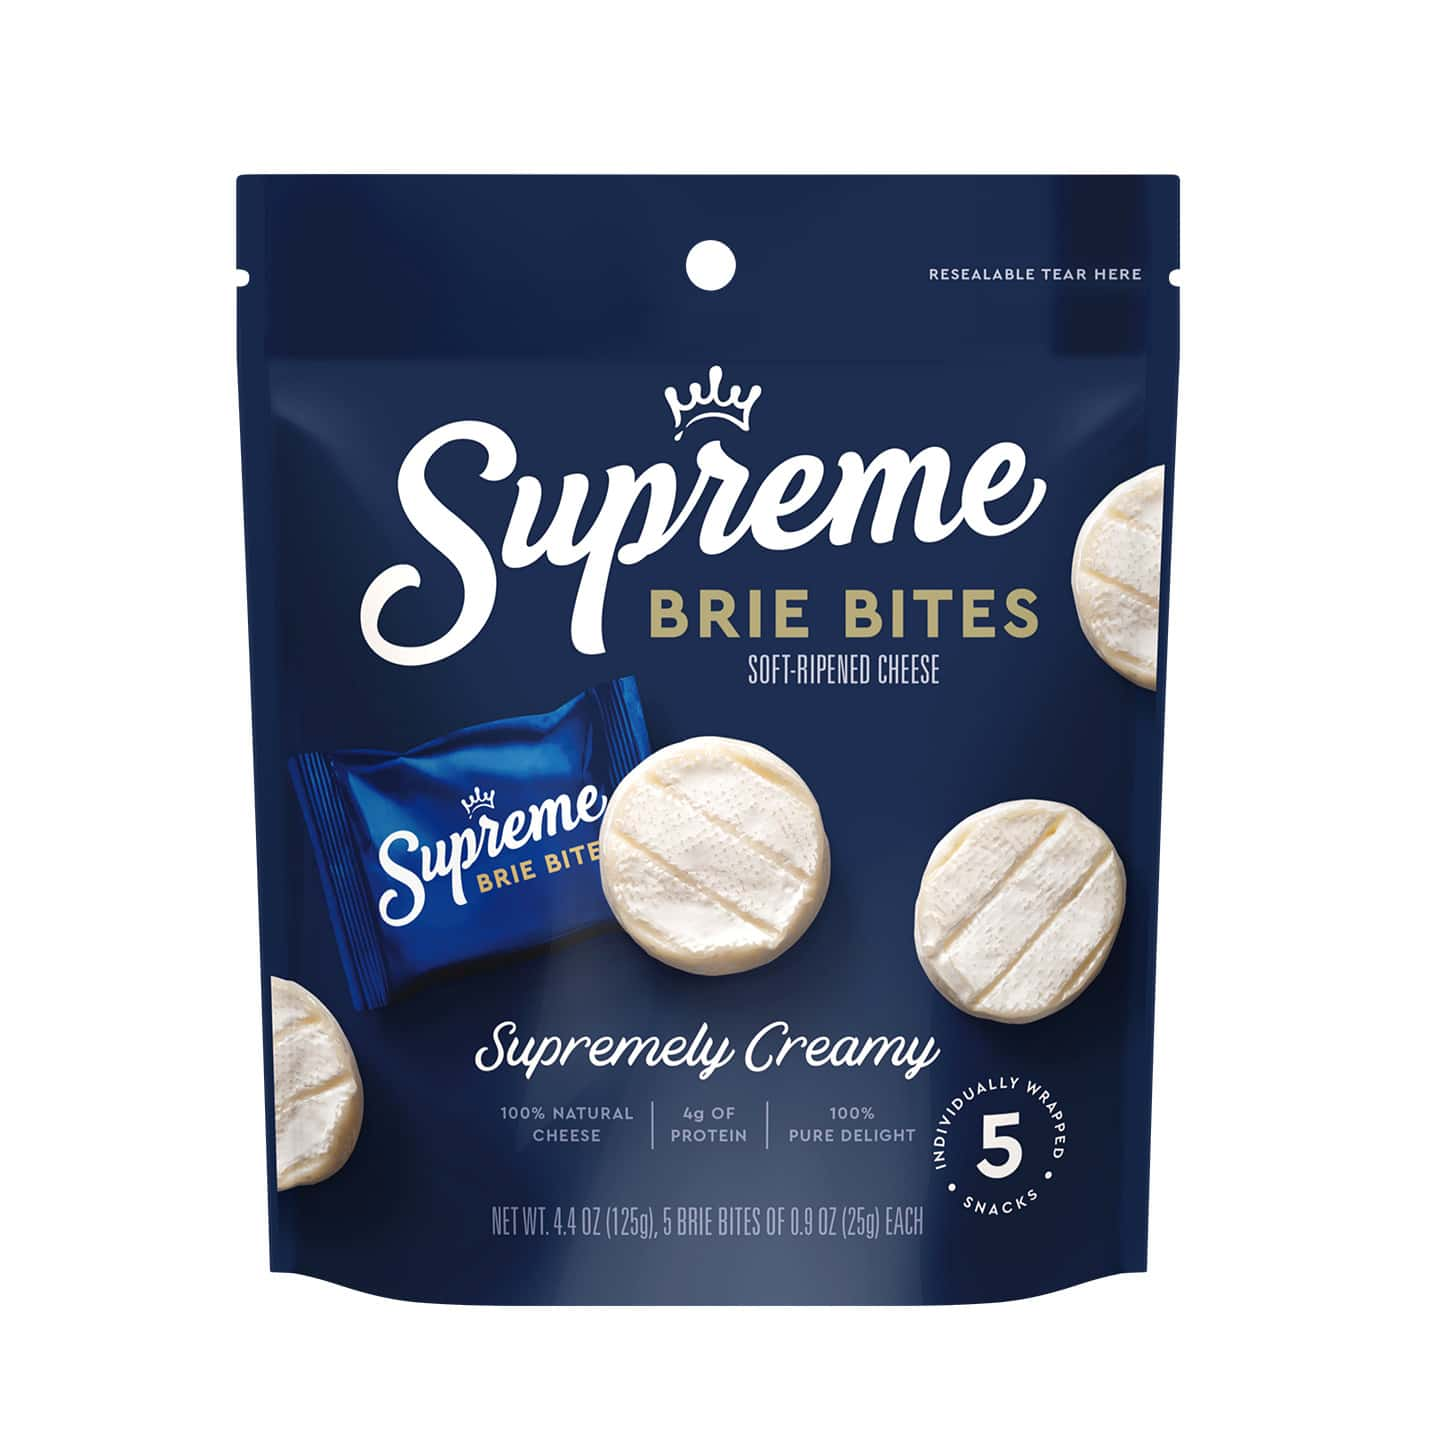 supreme brie bites packaging